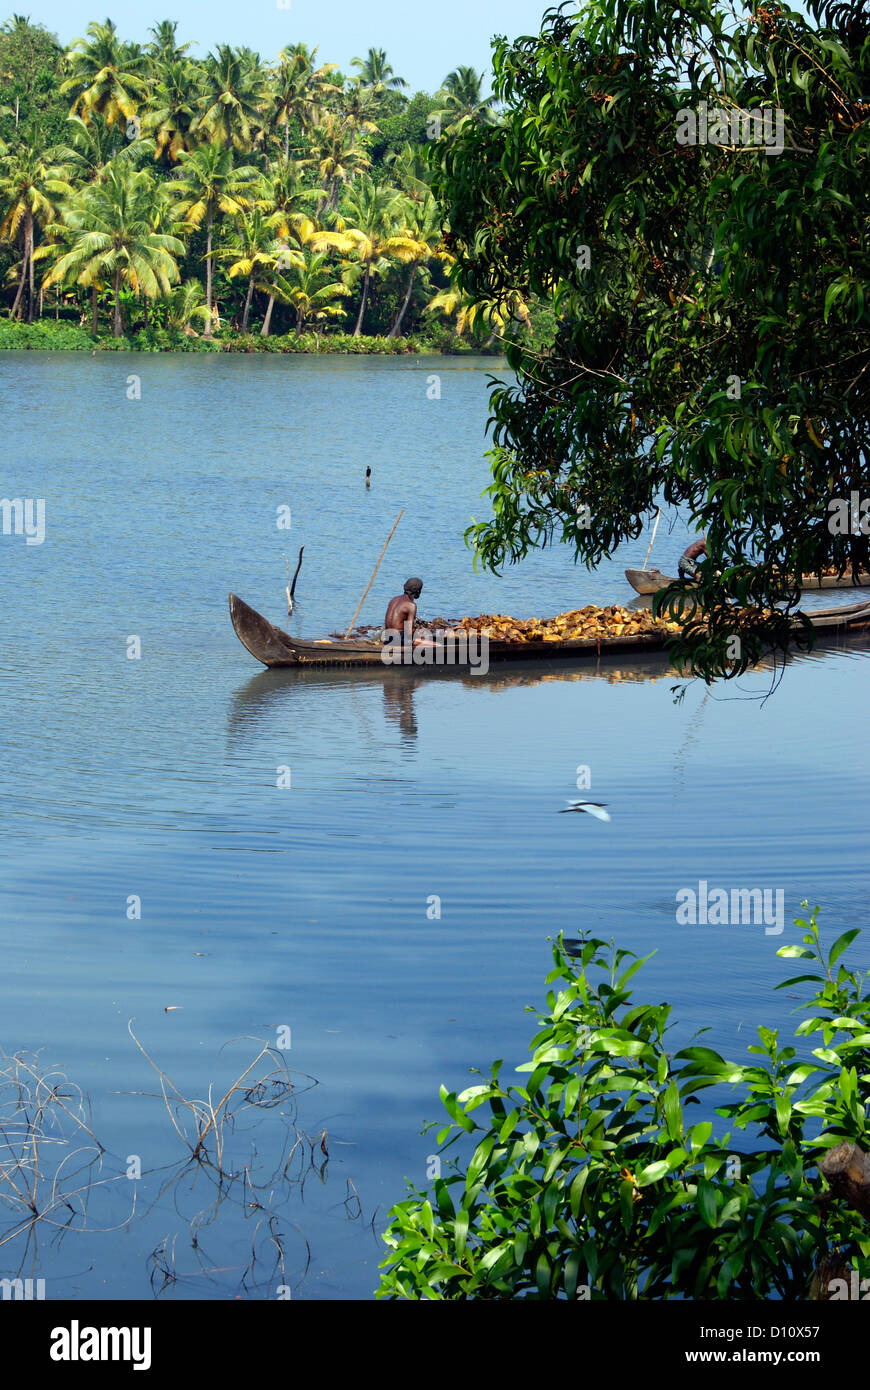 scenery view of kerala backwaters boat carrying raw